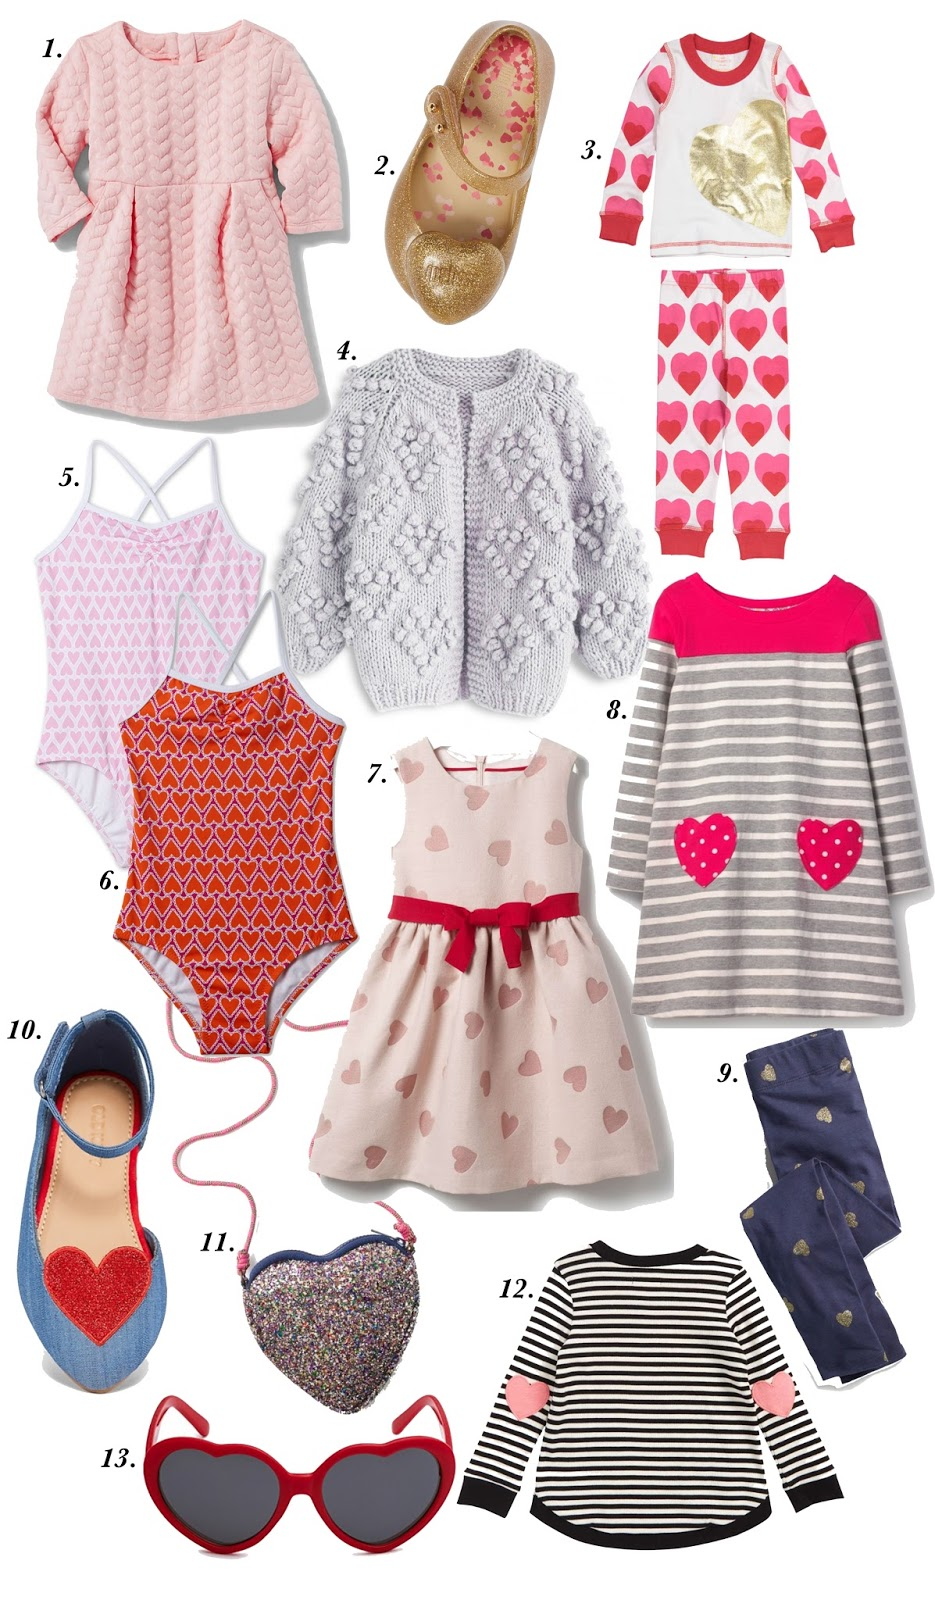 Heart Items for Girls - Toddler Fashion - See more on Something Delightful Blog